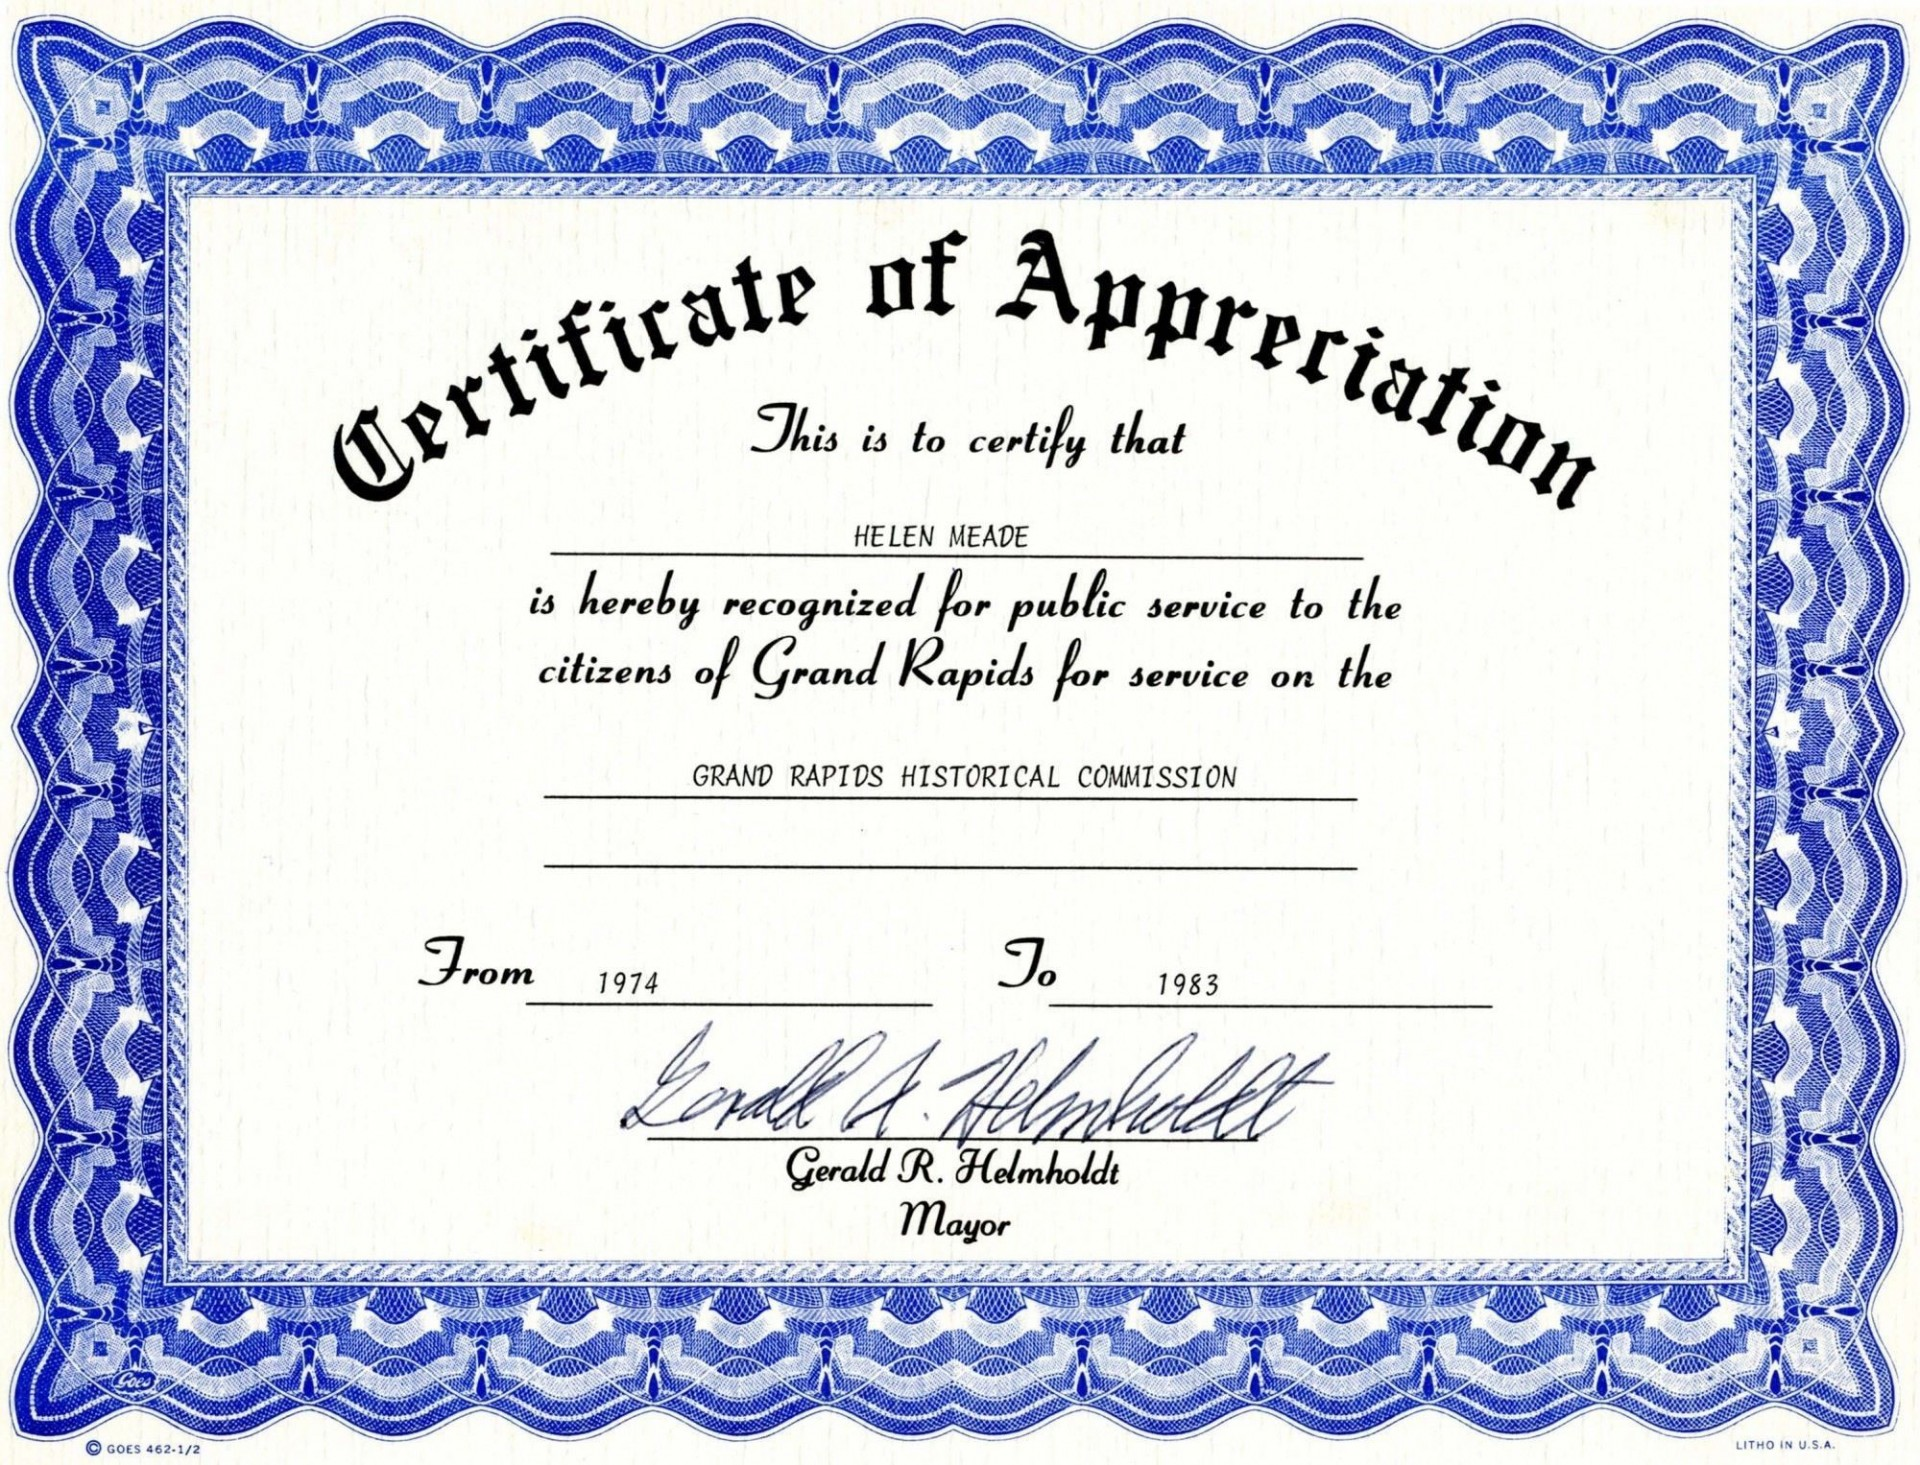 008 Magnificent Free Certificate Template Word Download Sample  Of Appreciation Doc Award Border1920